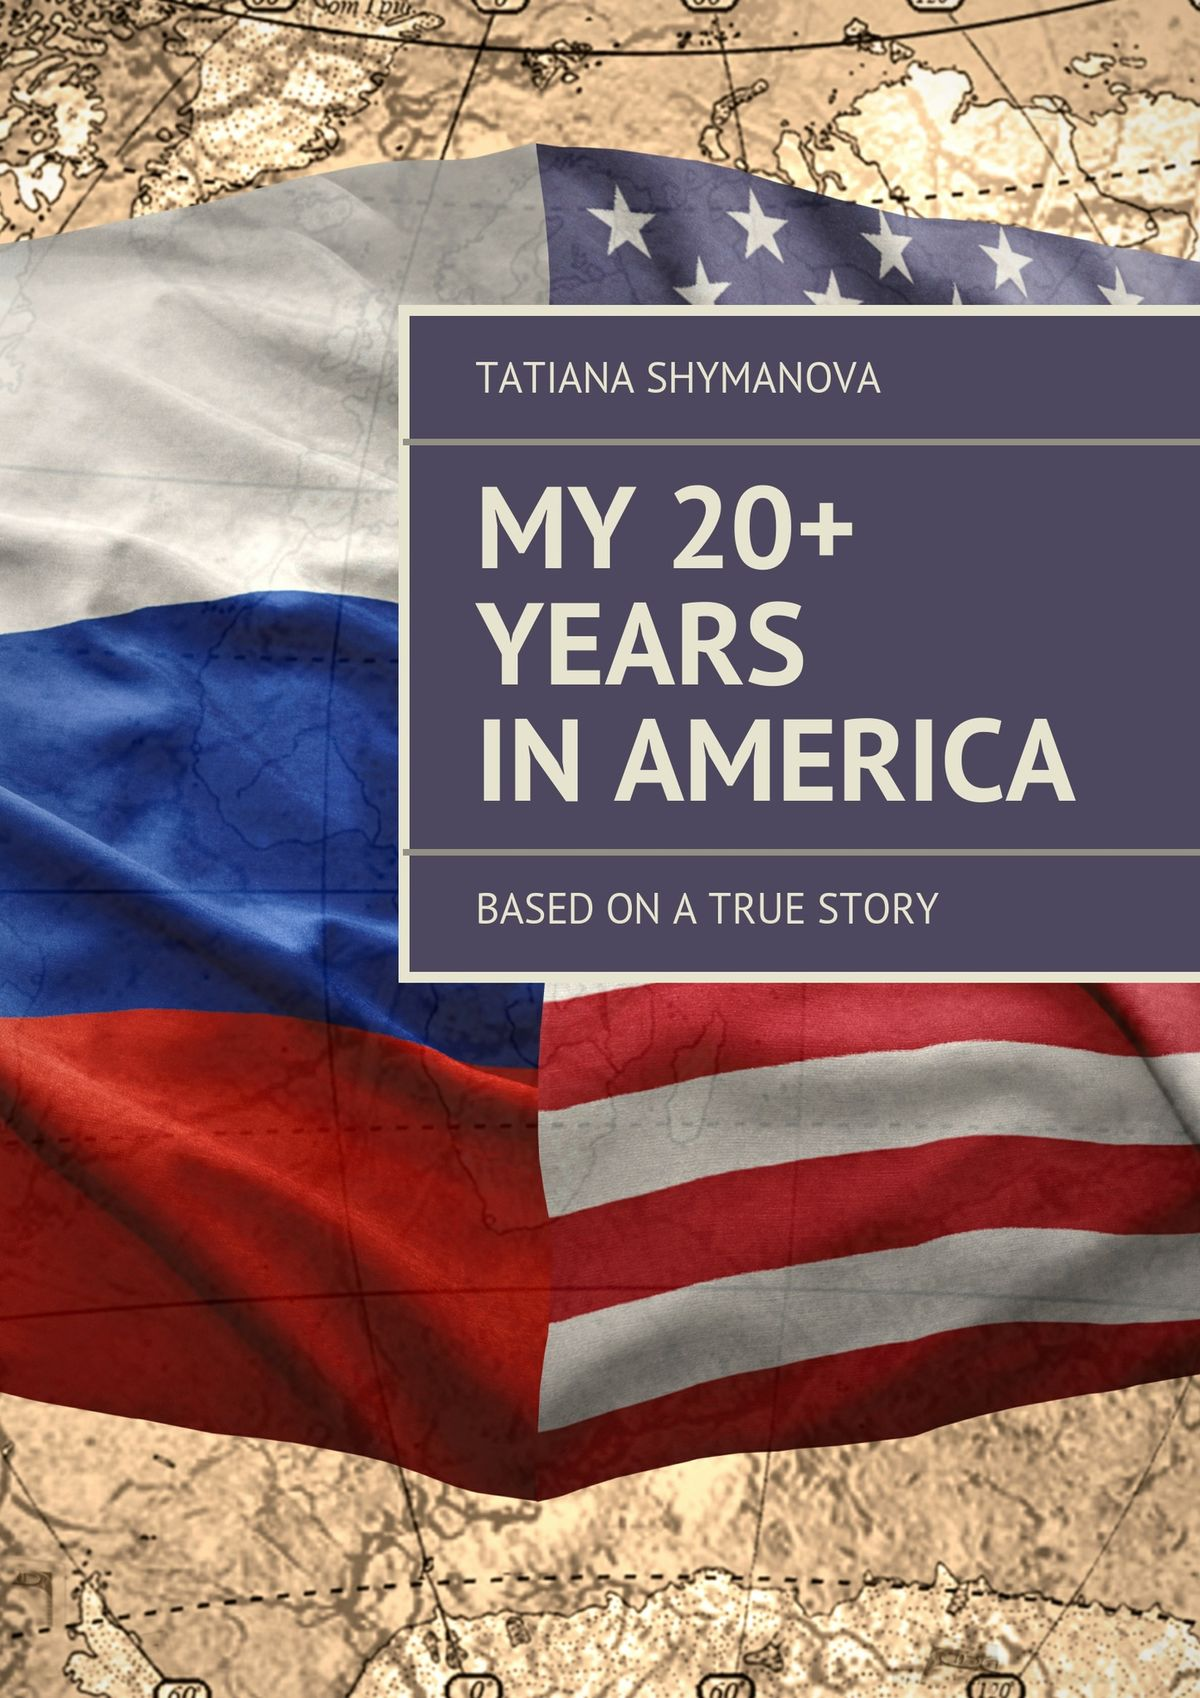 Tatiana Shymanova My 20+ Years In America. Based on a true story